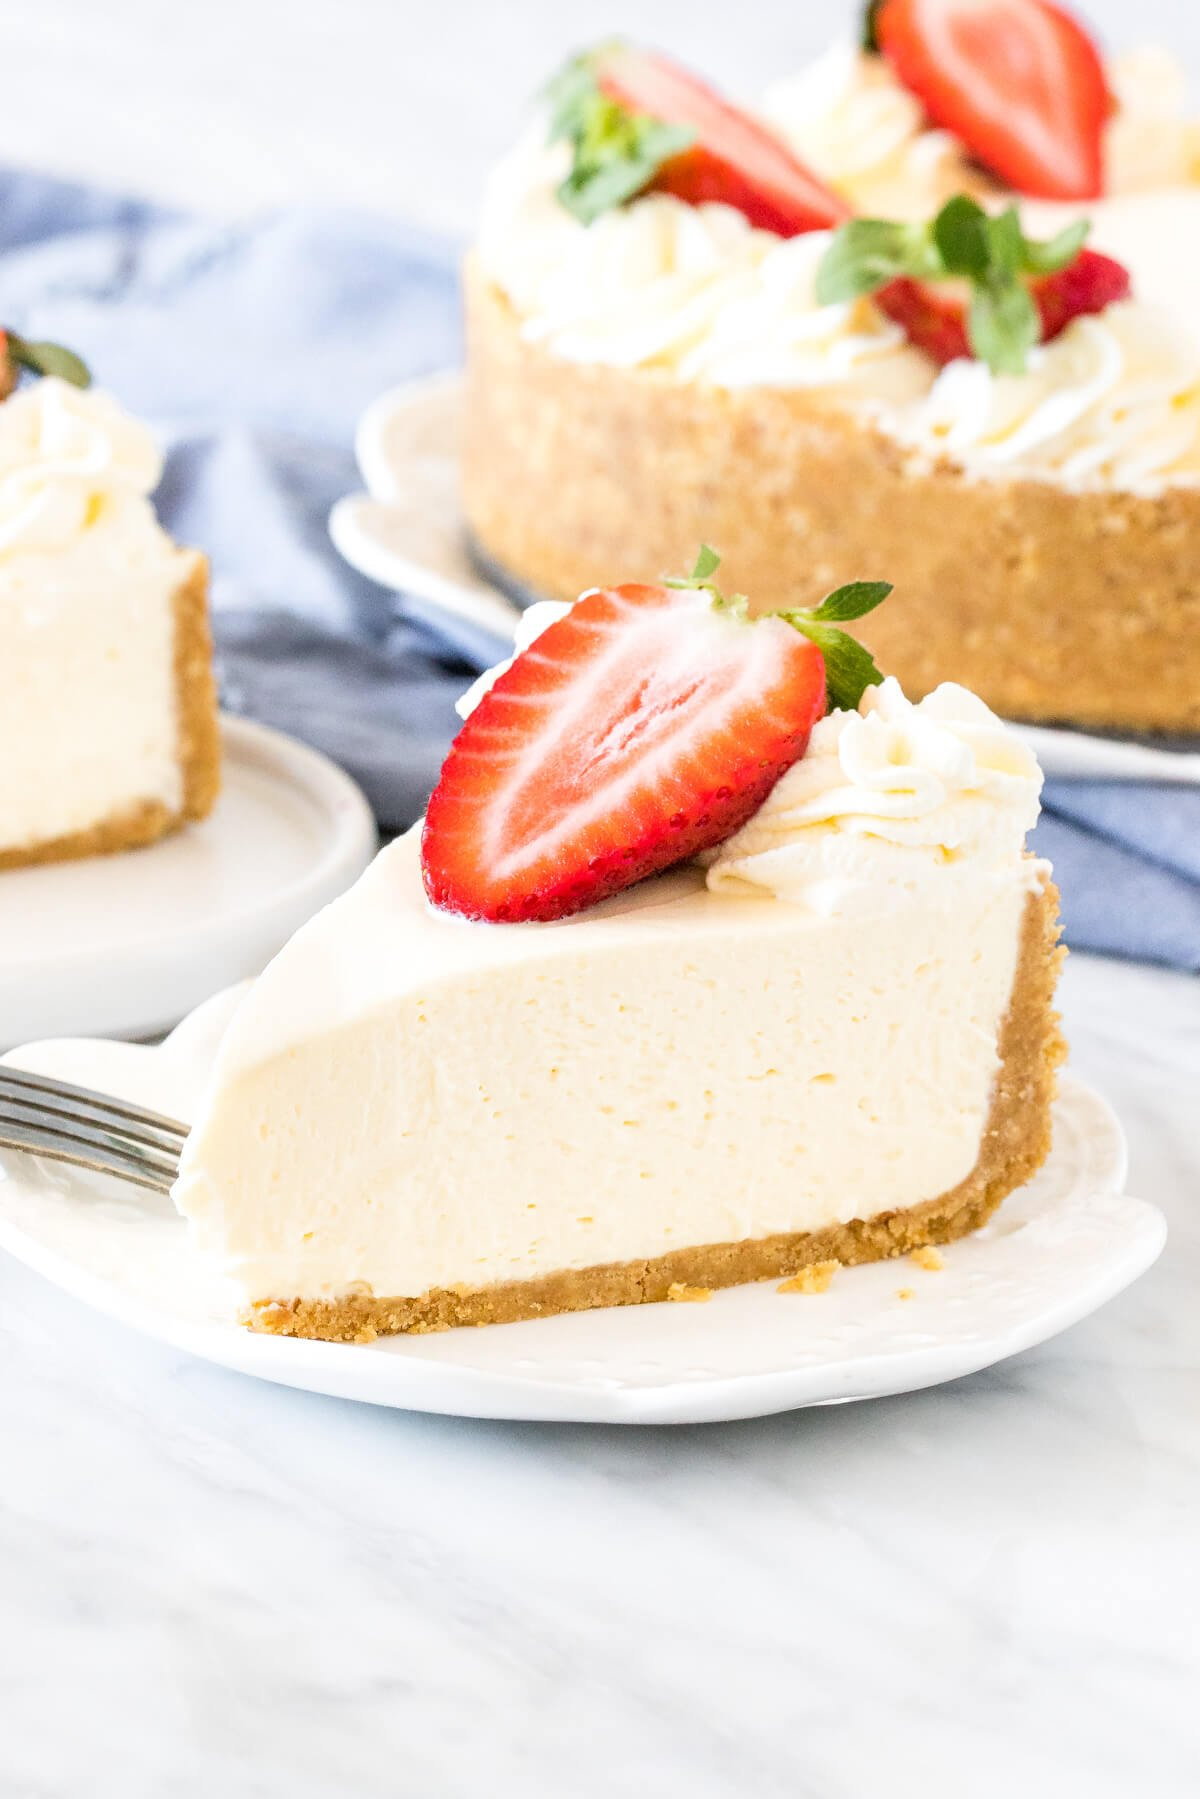 Slice of no bake cheesecake with crunchy graham crumb crust on a plate.